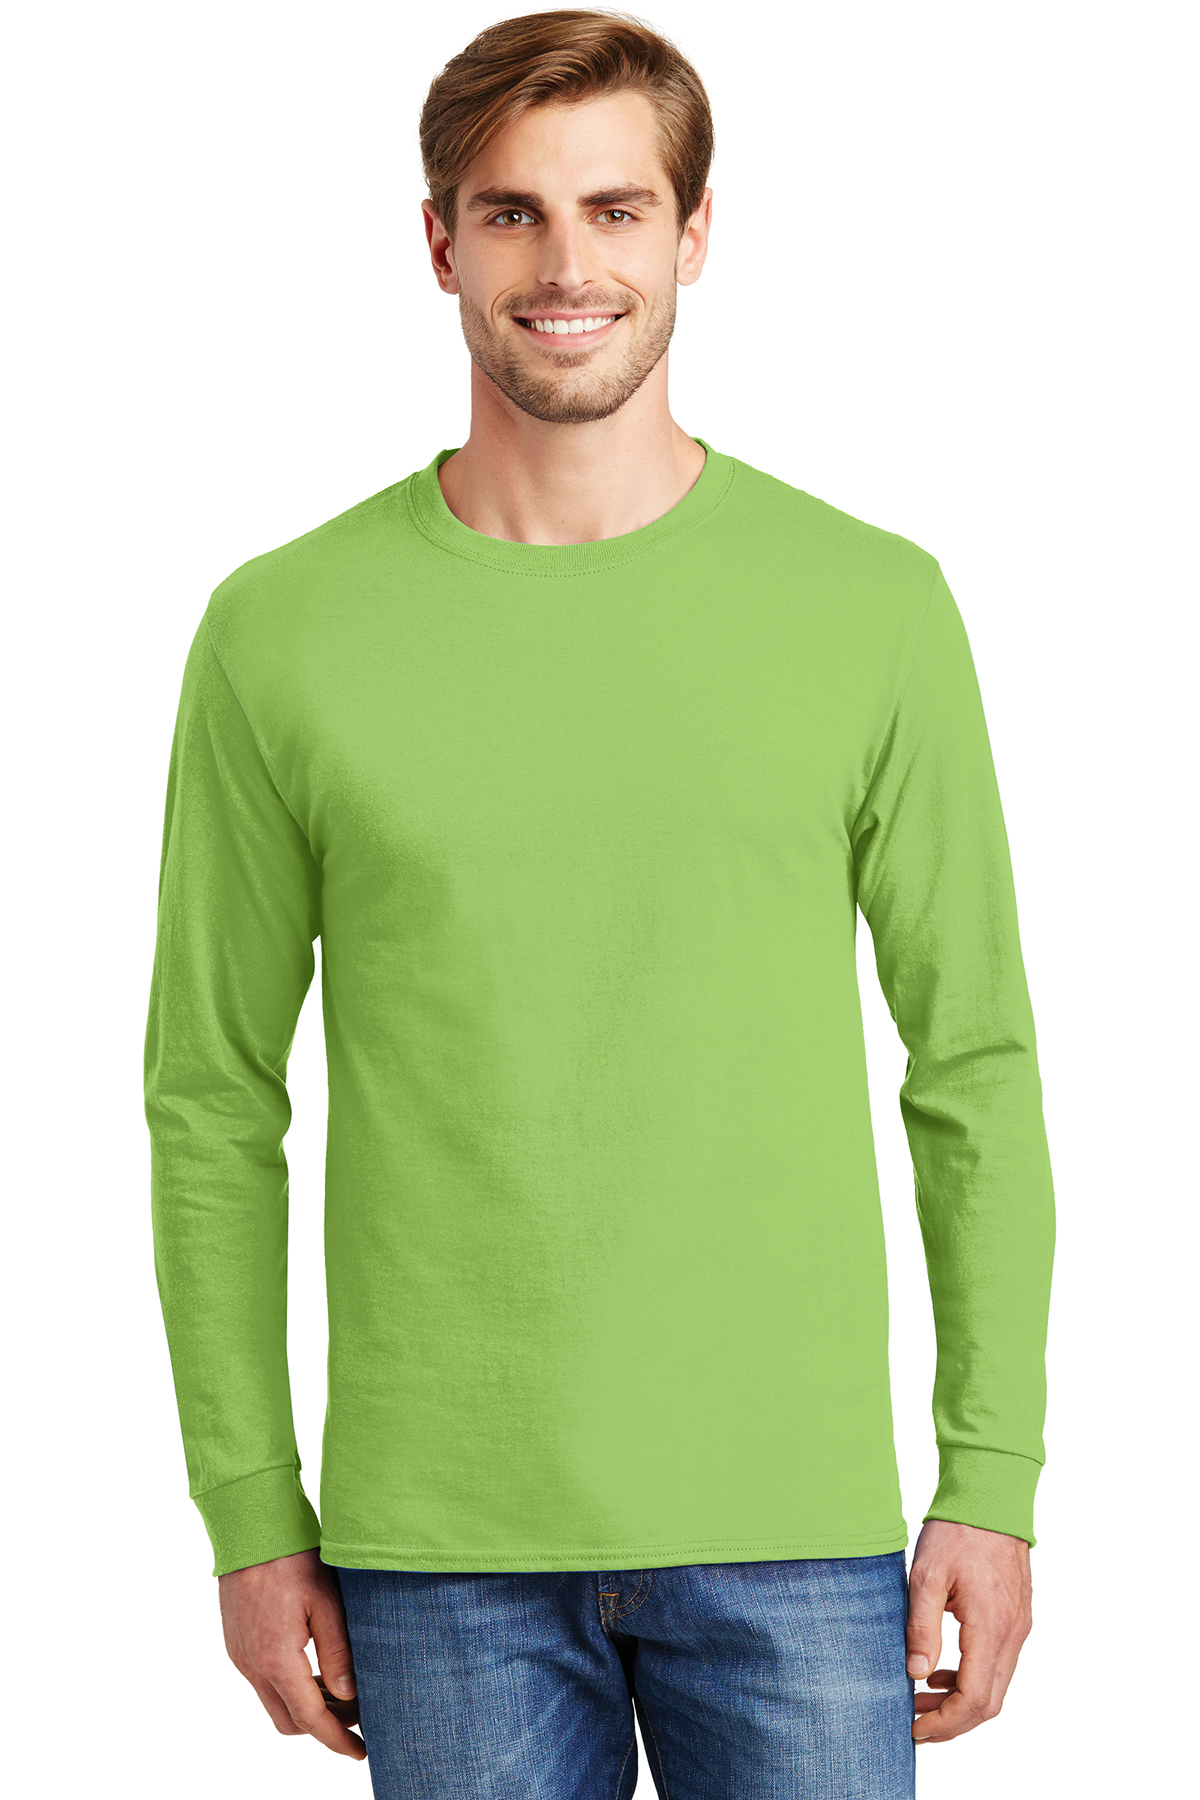 168a6af2ef0 Hanes® - Tagless® 100% Cotton Long Sleeve T-Shirt